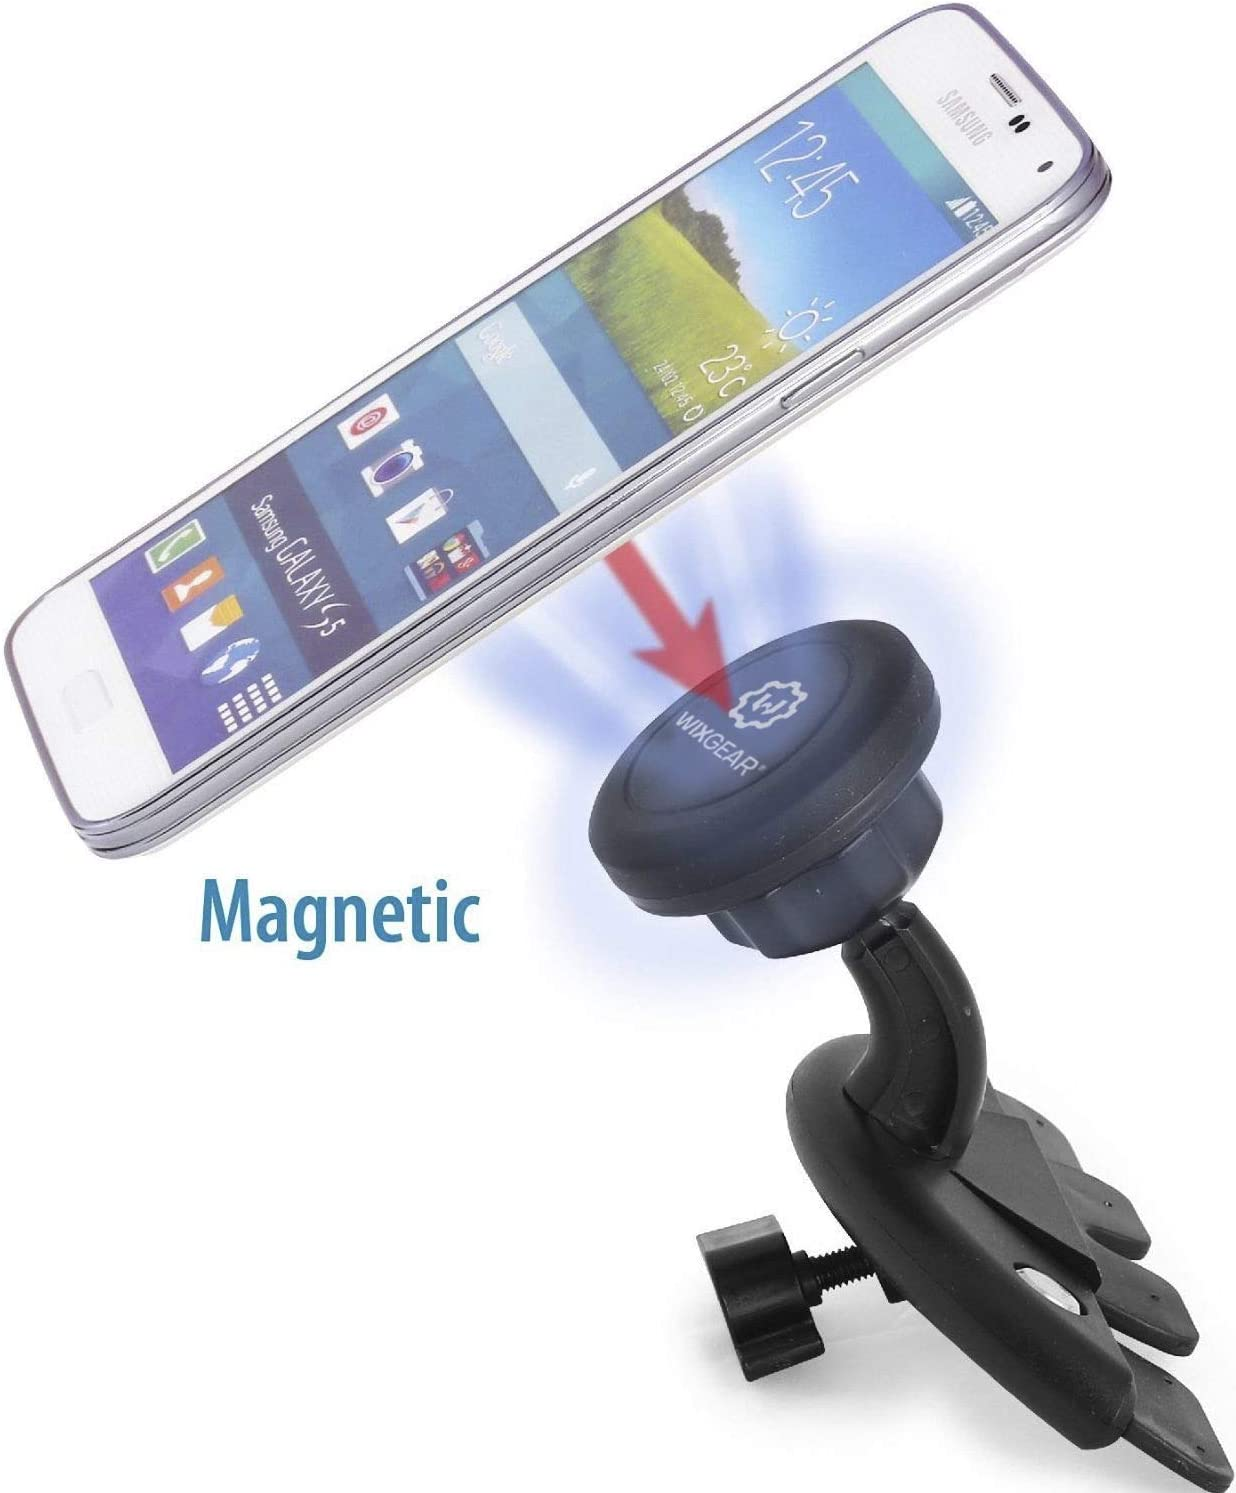 WizGear Universal Magnetic Car Mount Holder Magnetic Dashbord mount Windshield Mount and Dashboard Mount Holder for Cell Phones with Fast Swift-snap Technology Dashboard Mount New Version Dashboard Mount